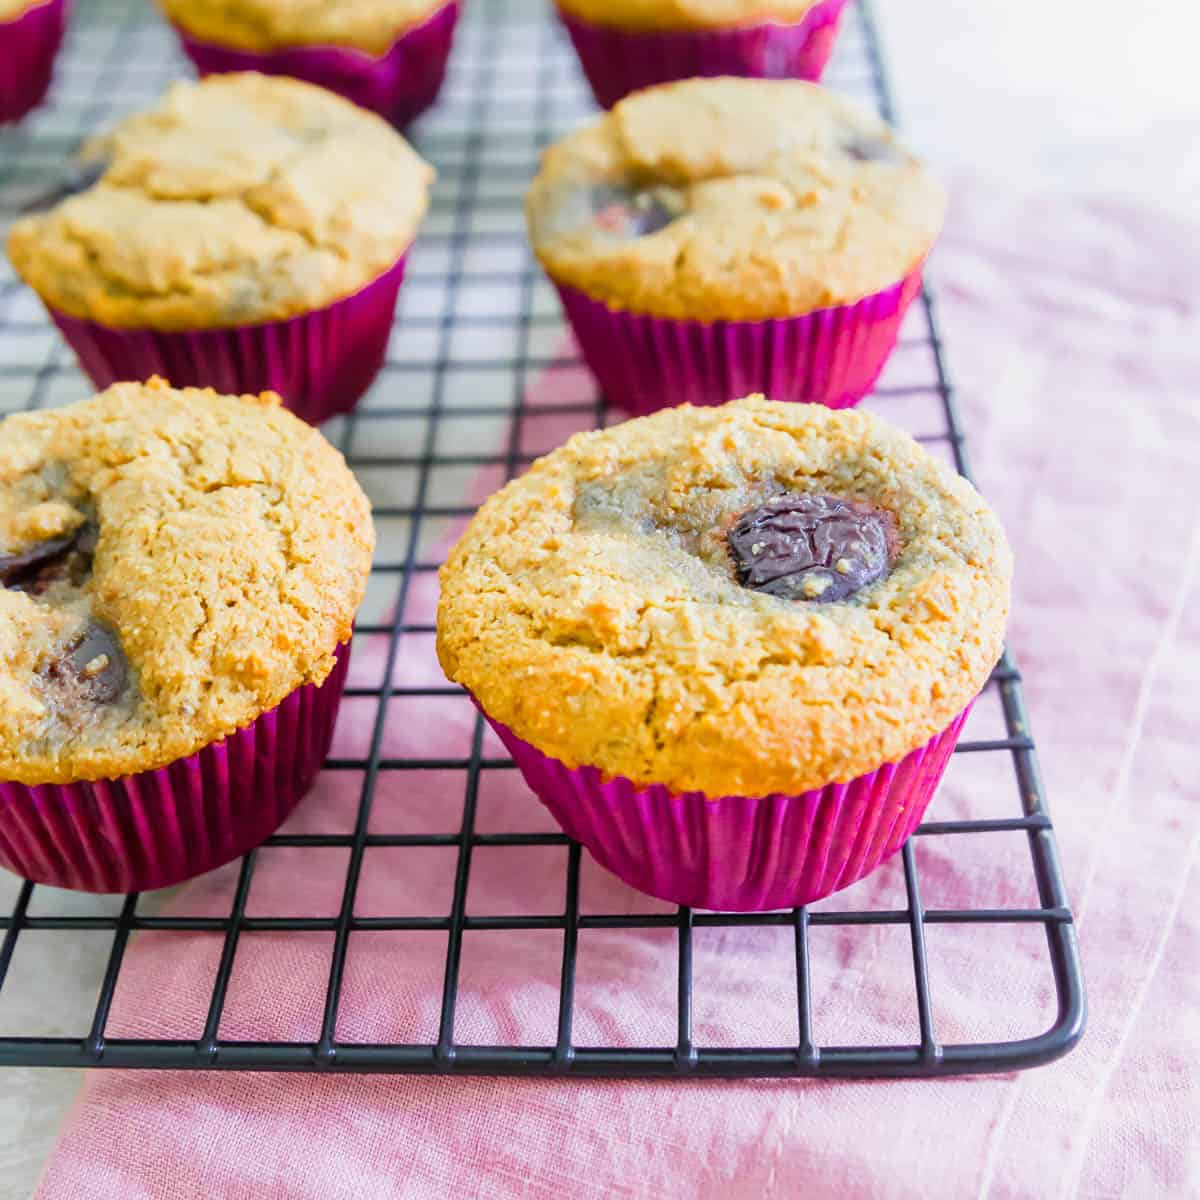 These vegan and gluten-free corn muffins are filled with whole fresh cherries and make a delicious summer baked good!